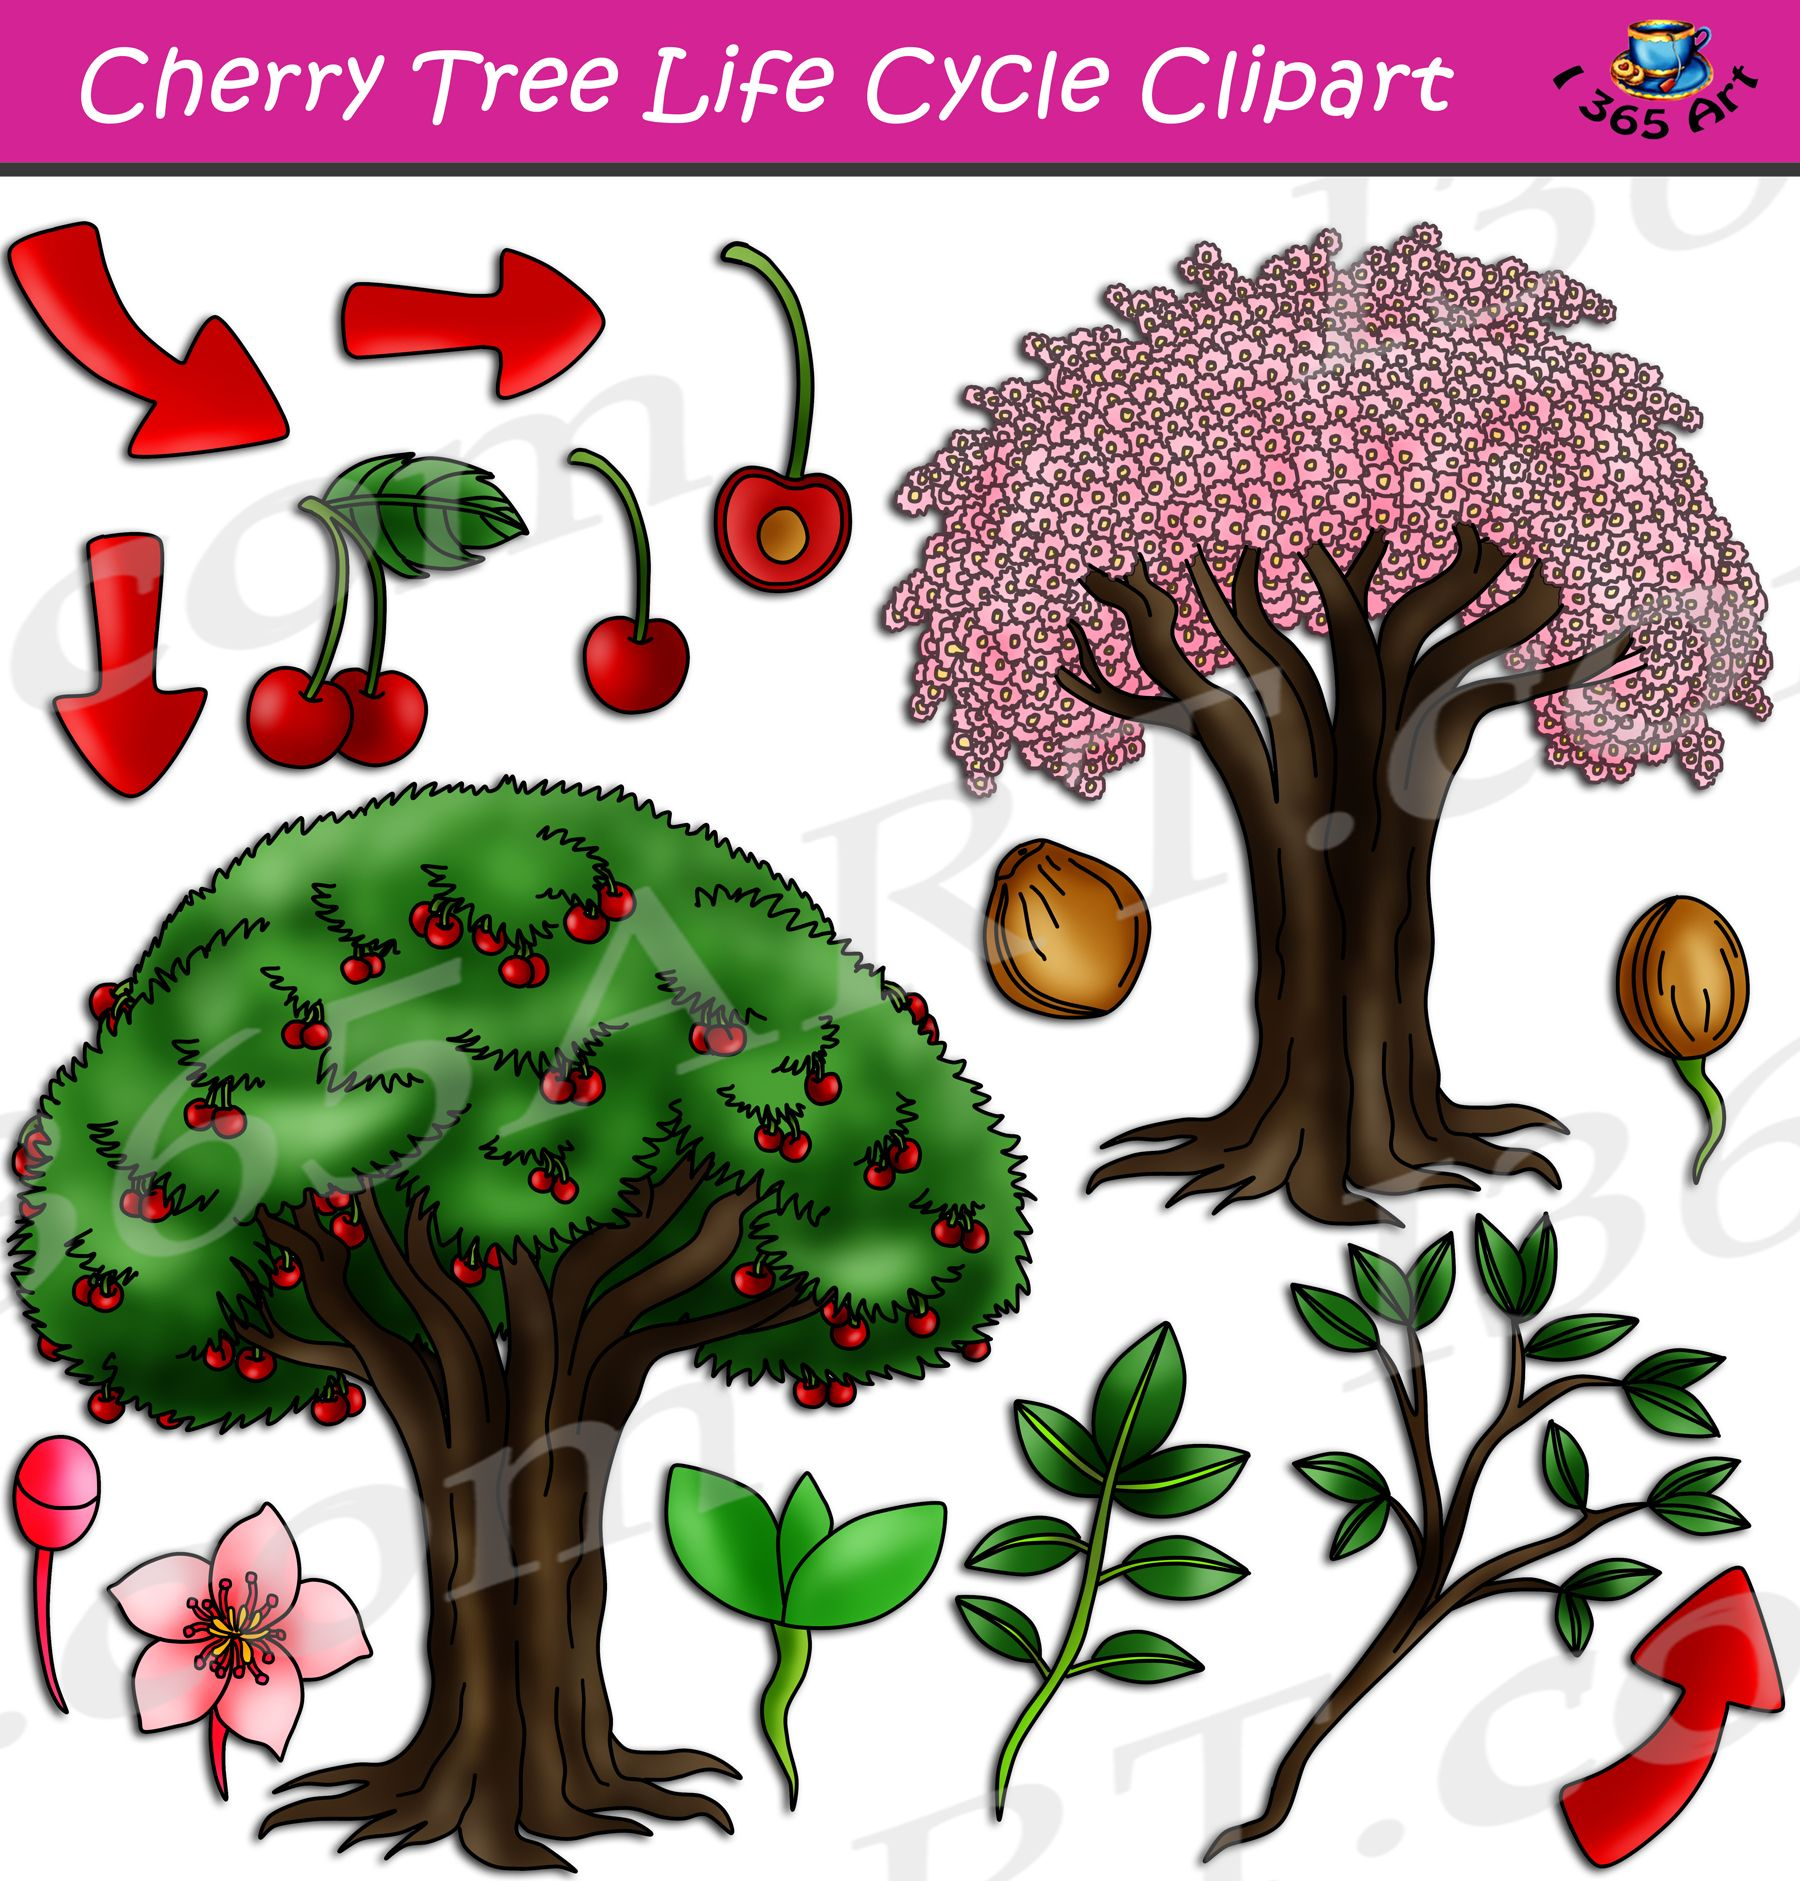 Cherry Tree Life Cycle Clipart Set Download Tree Life Cycle Cherry Tree Clip Art